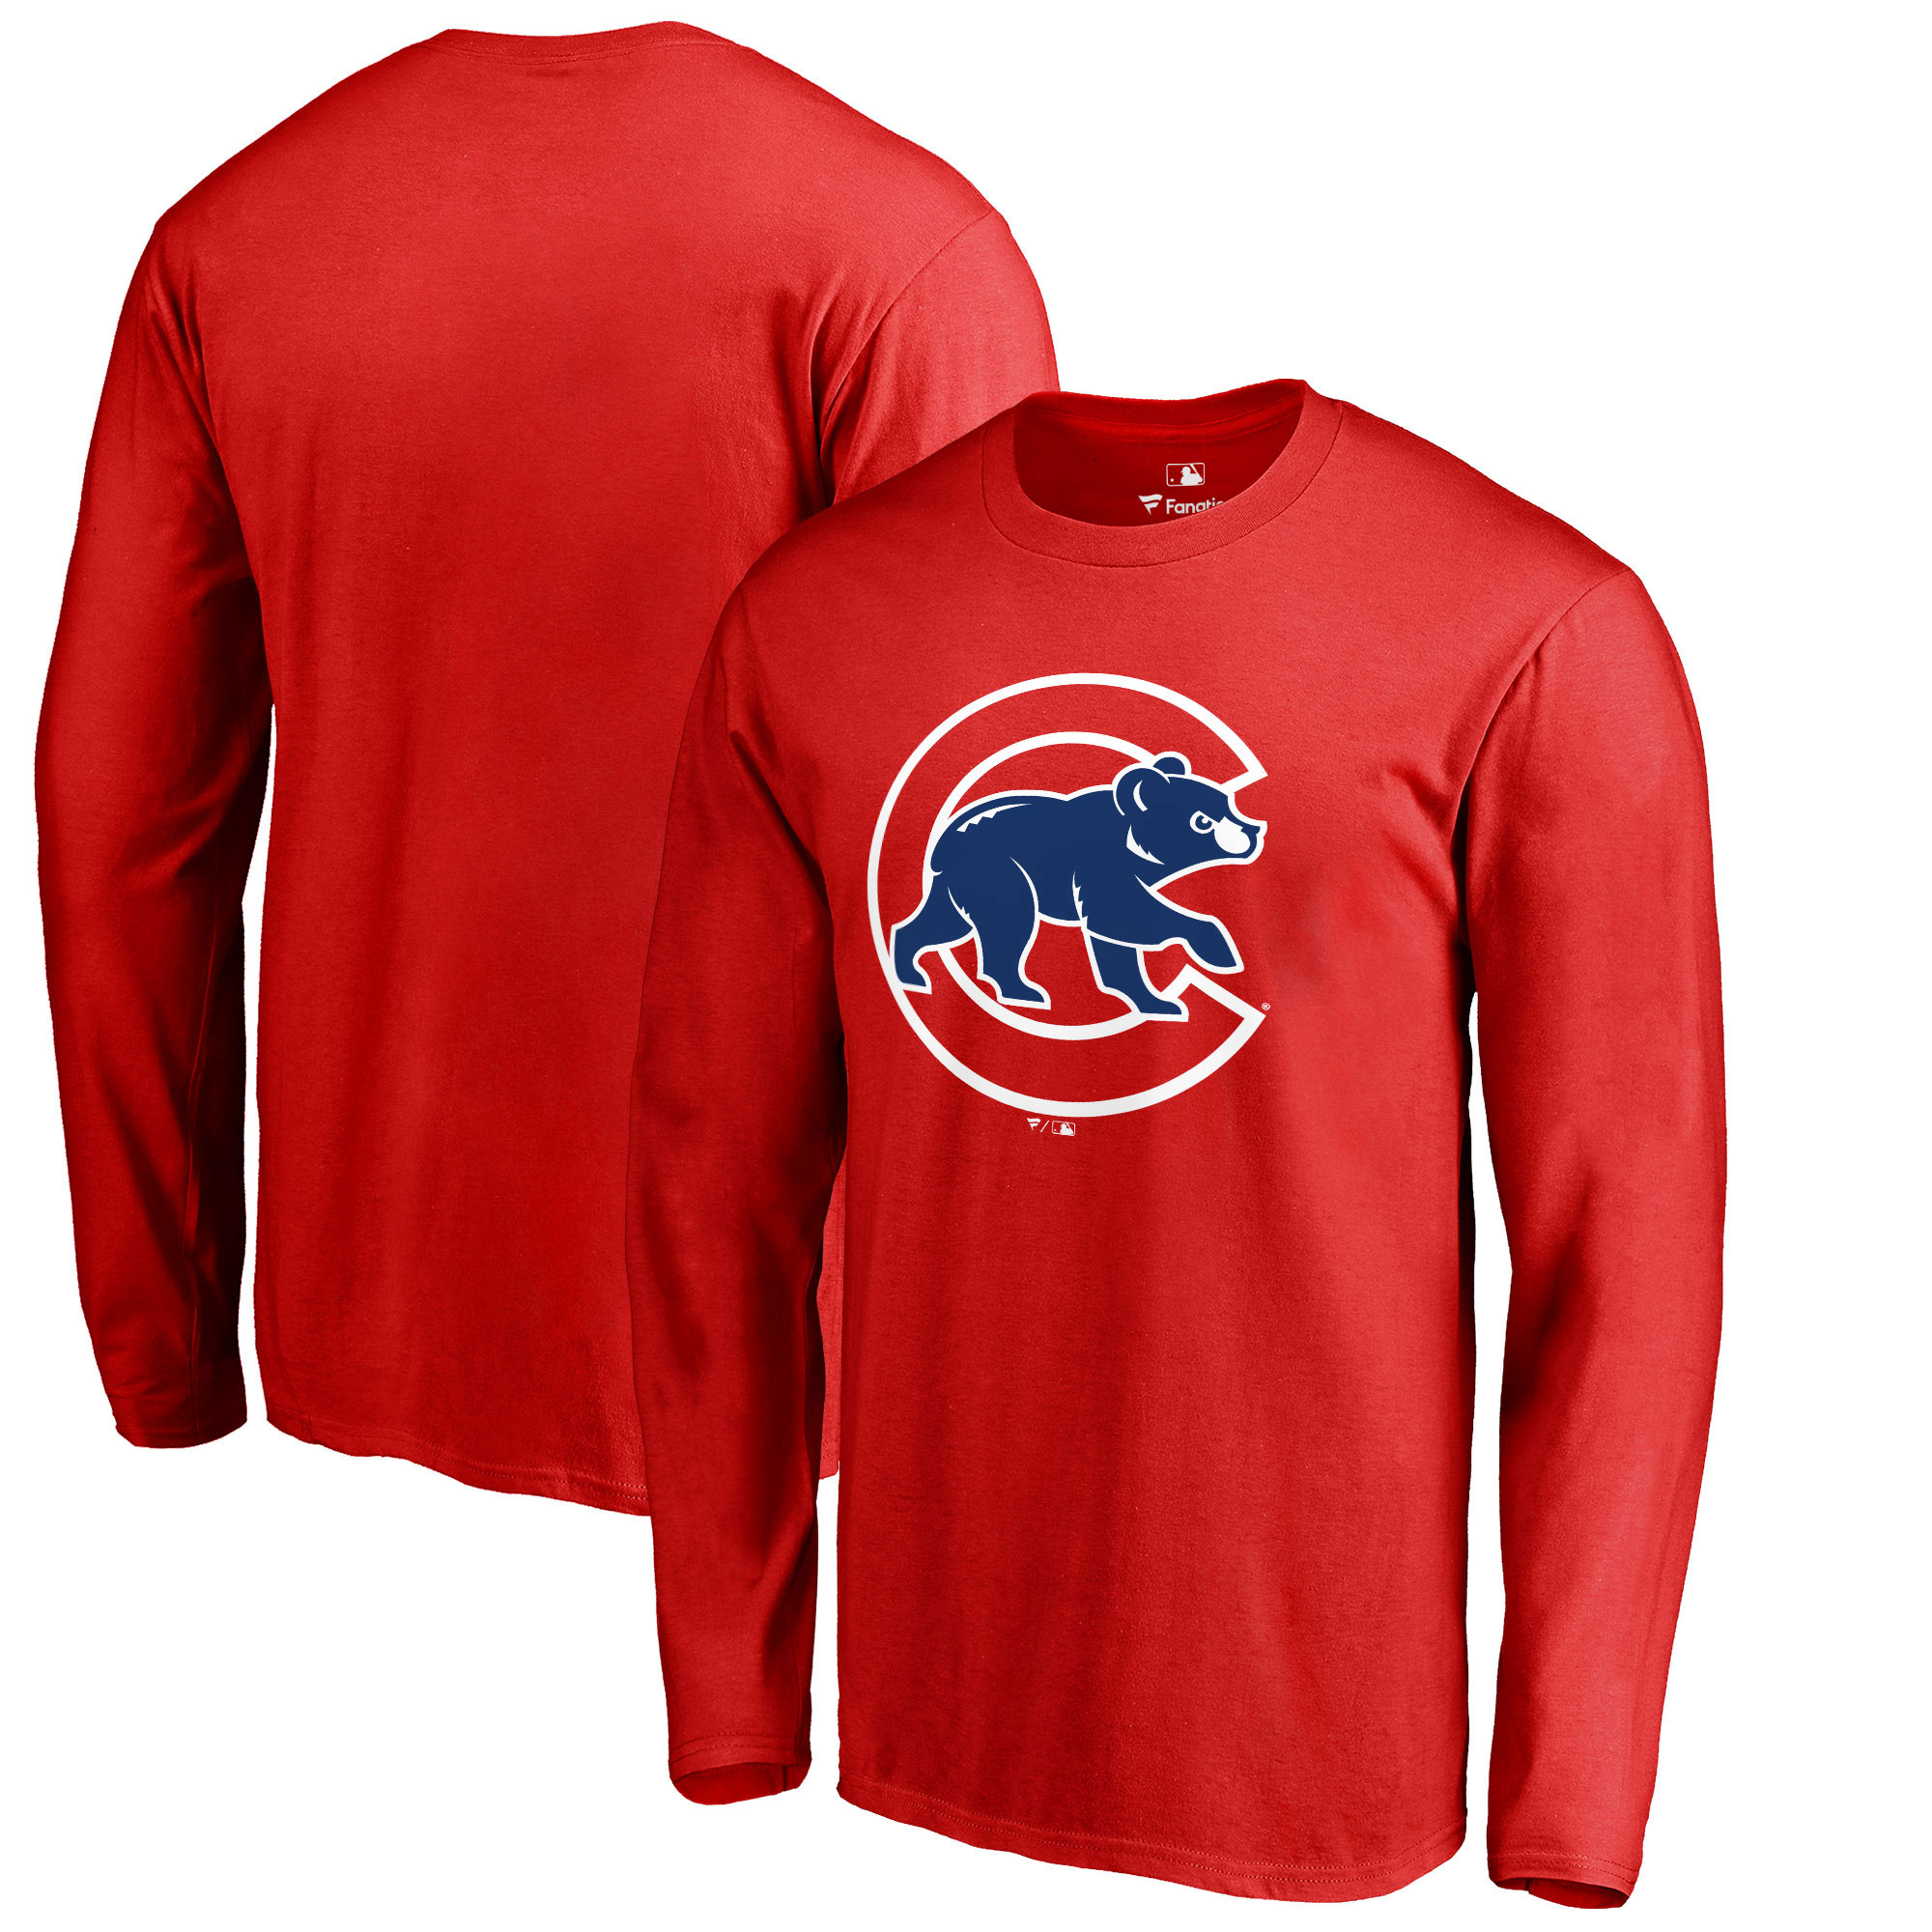 Men's Fanatics Branded Red Chicago Cubs Primary Logo Long Sleeve T-Shirt